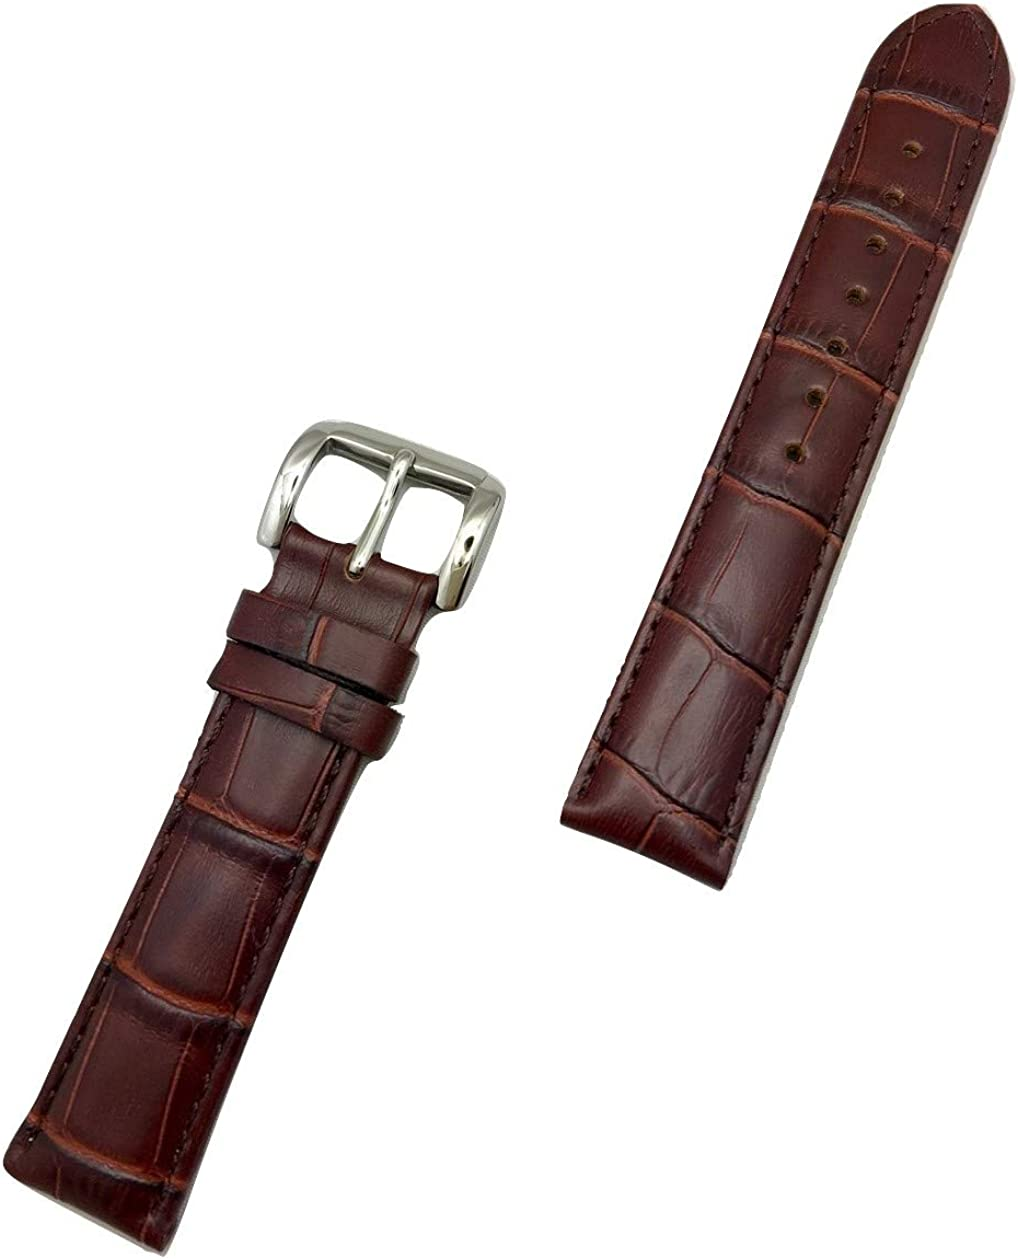 19mm Dark Brown Genuine Leather Watch Band   Square Alligator Crocodile Grained, Lightly Padded Replacement Wrist Strap that brings New Life to Any Watch (Mens Standard Length)